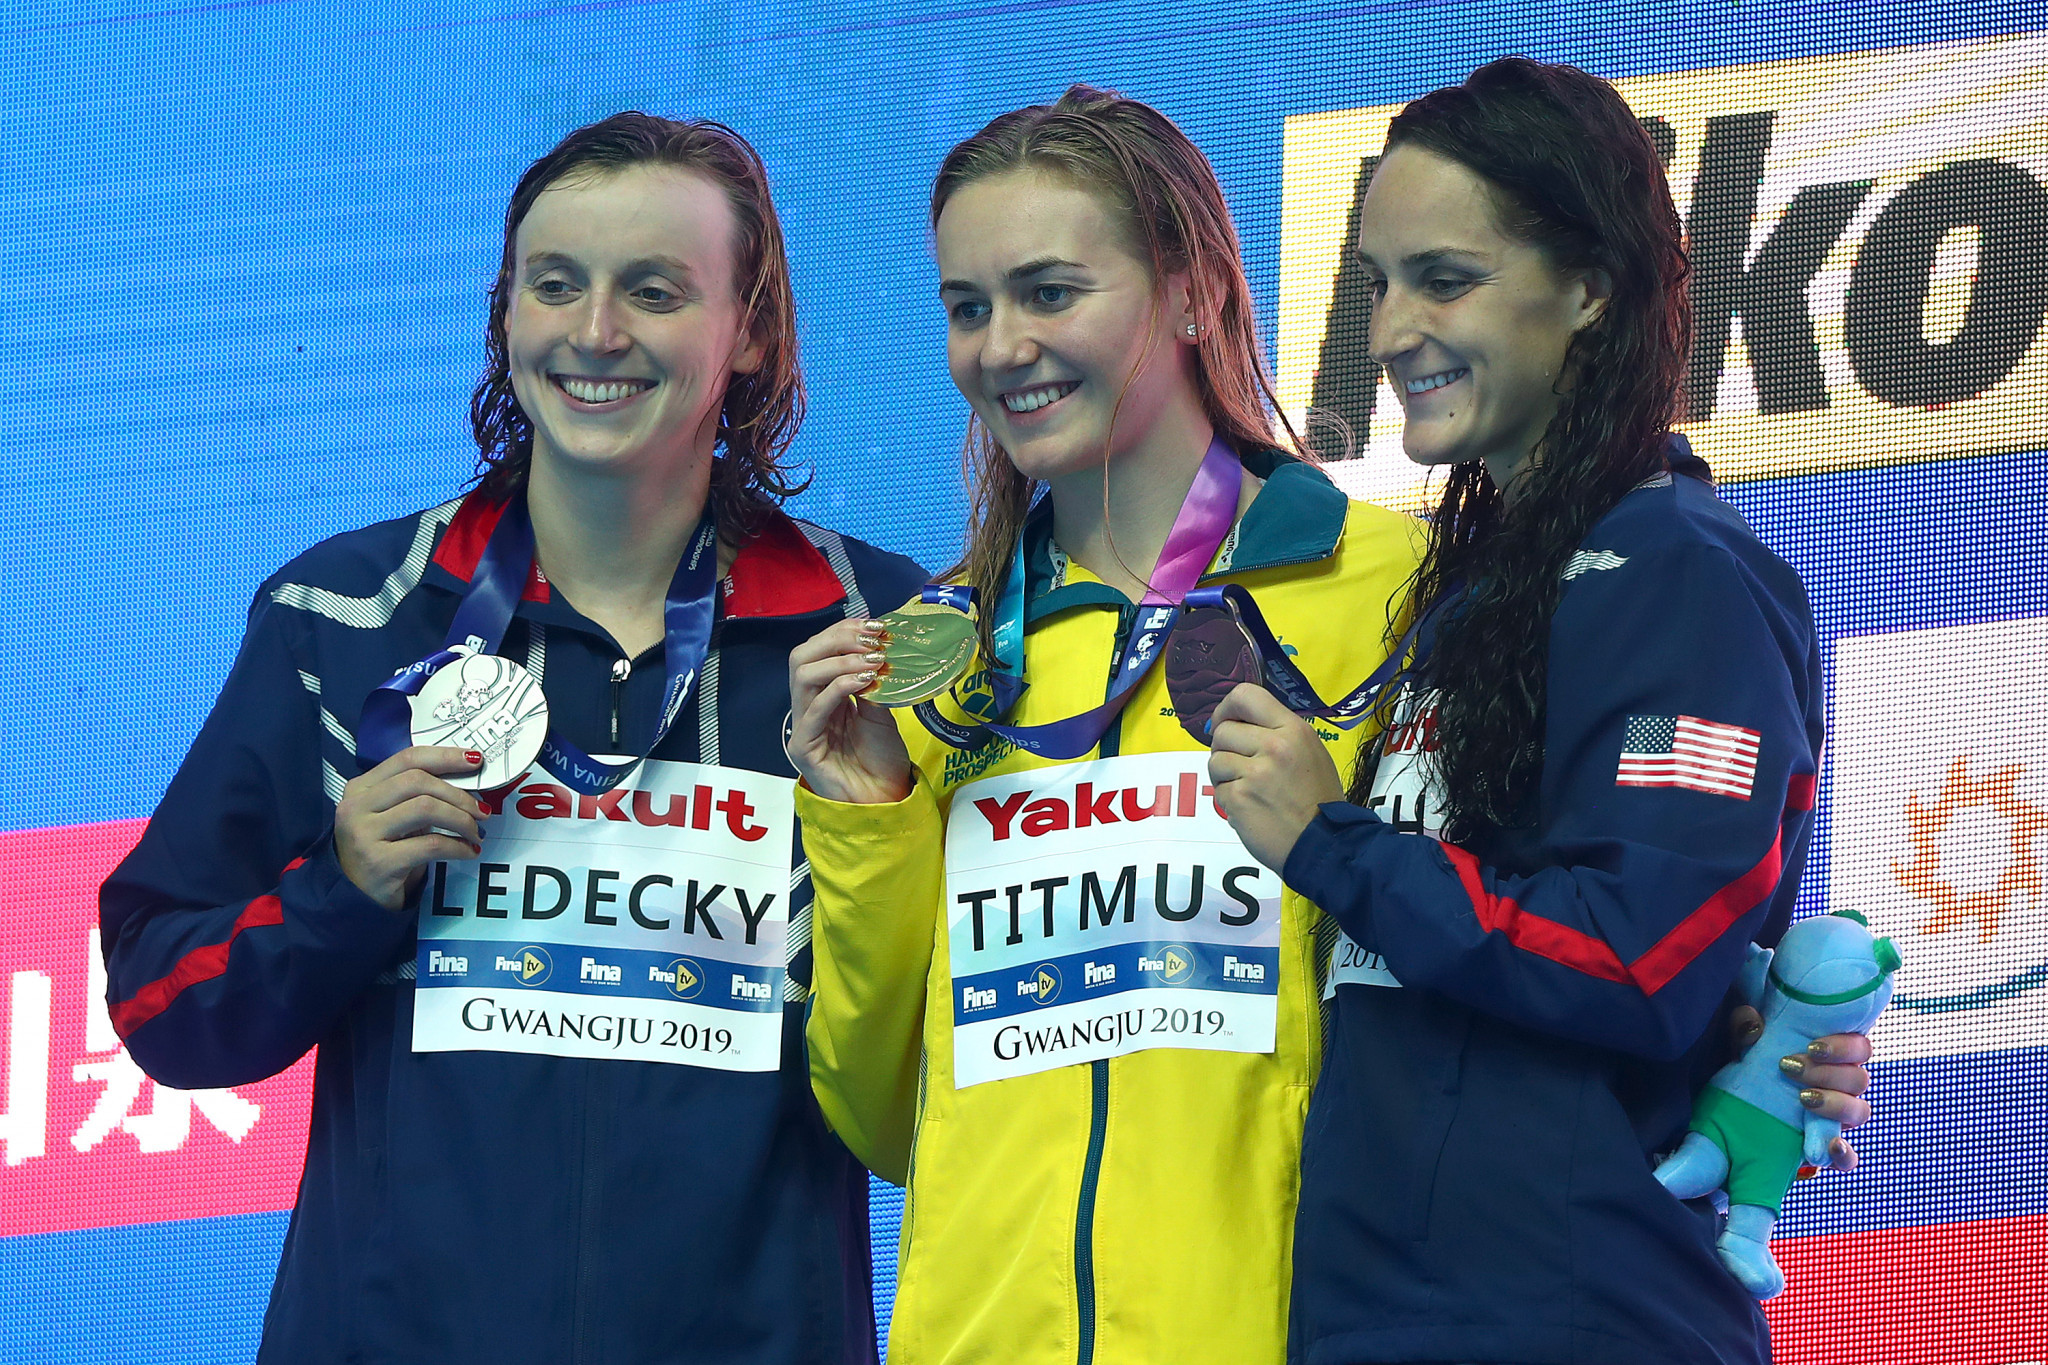 Australia's Ariarne Titmus pushed five-times Olympic champion Katie Ledecky into silver in the women's 400m freestyle final in Gwangju ©Getty Images